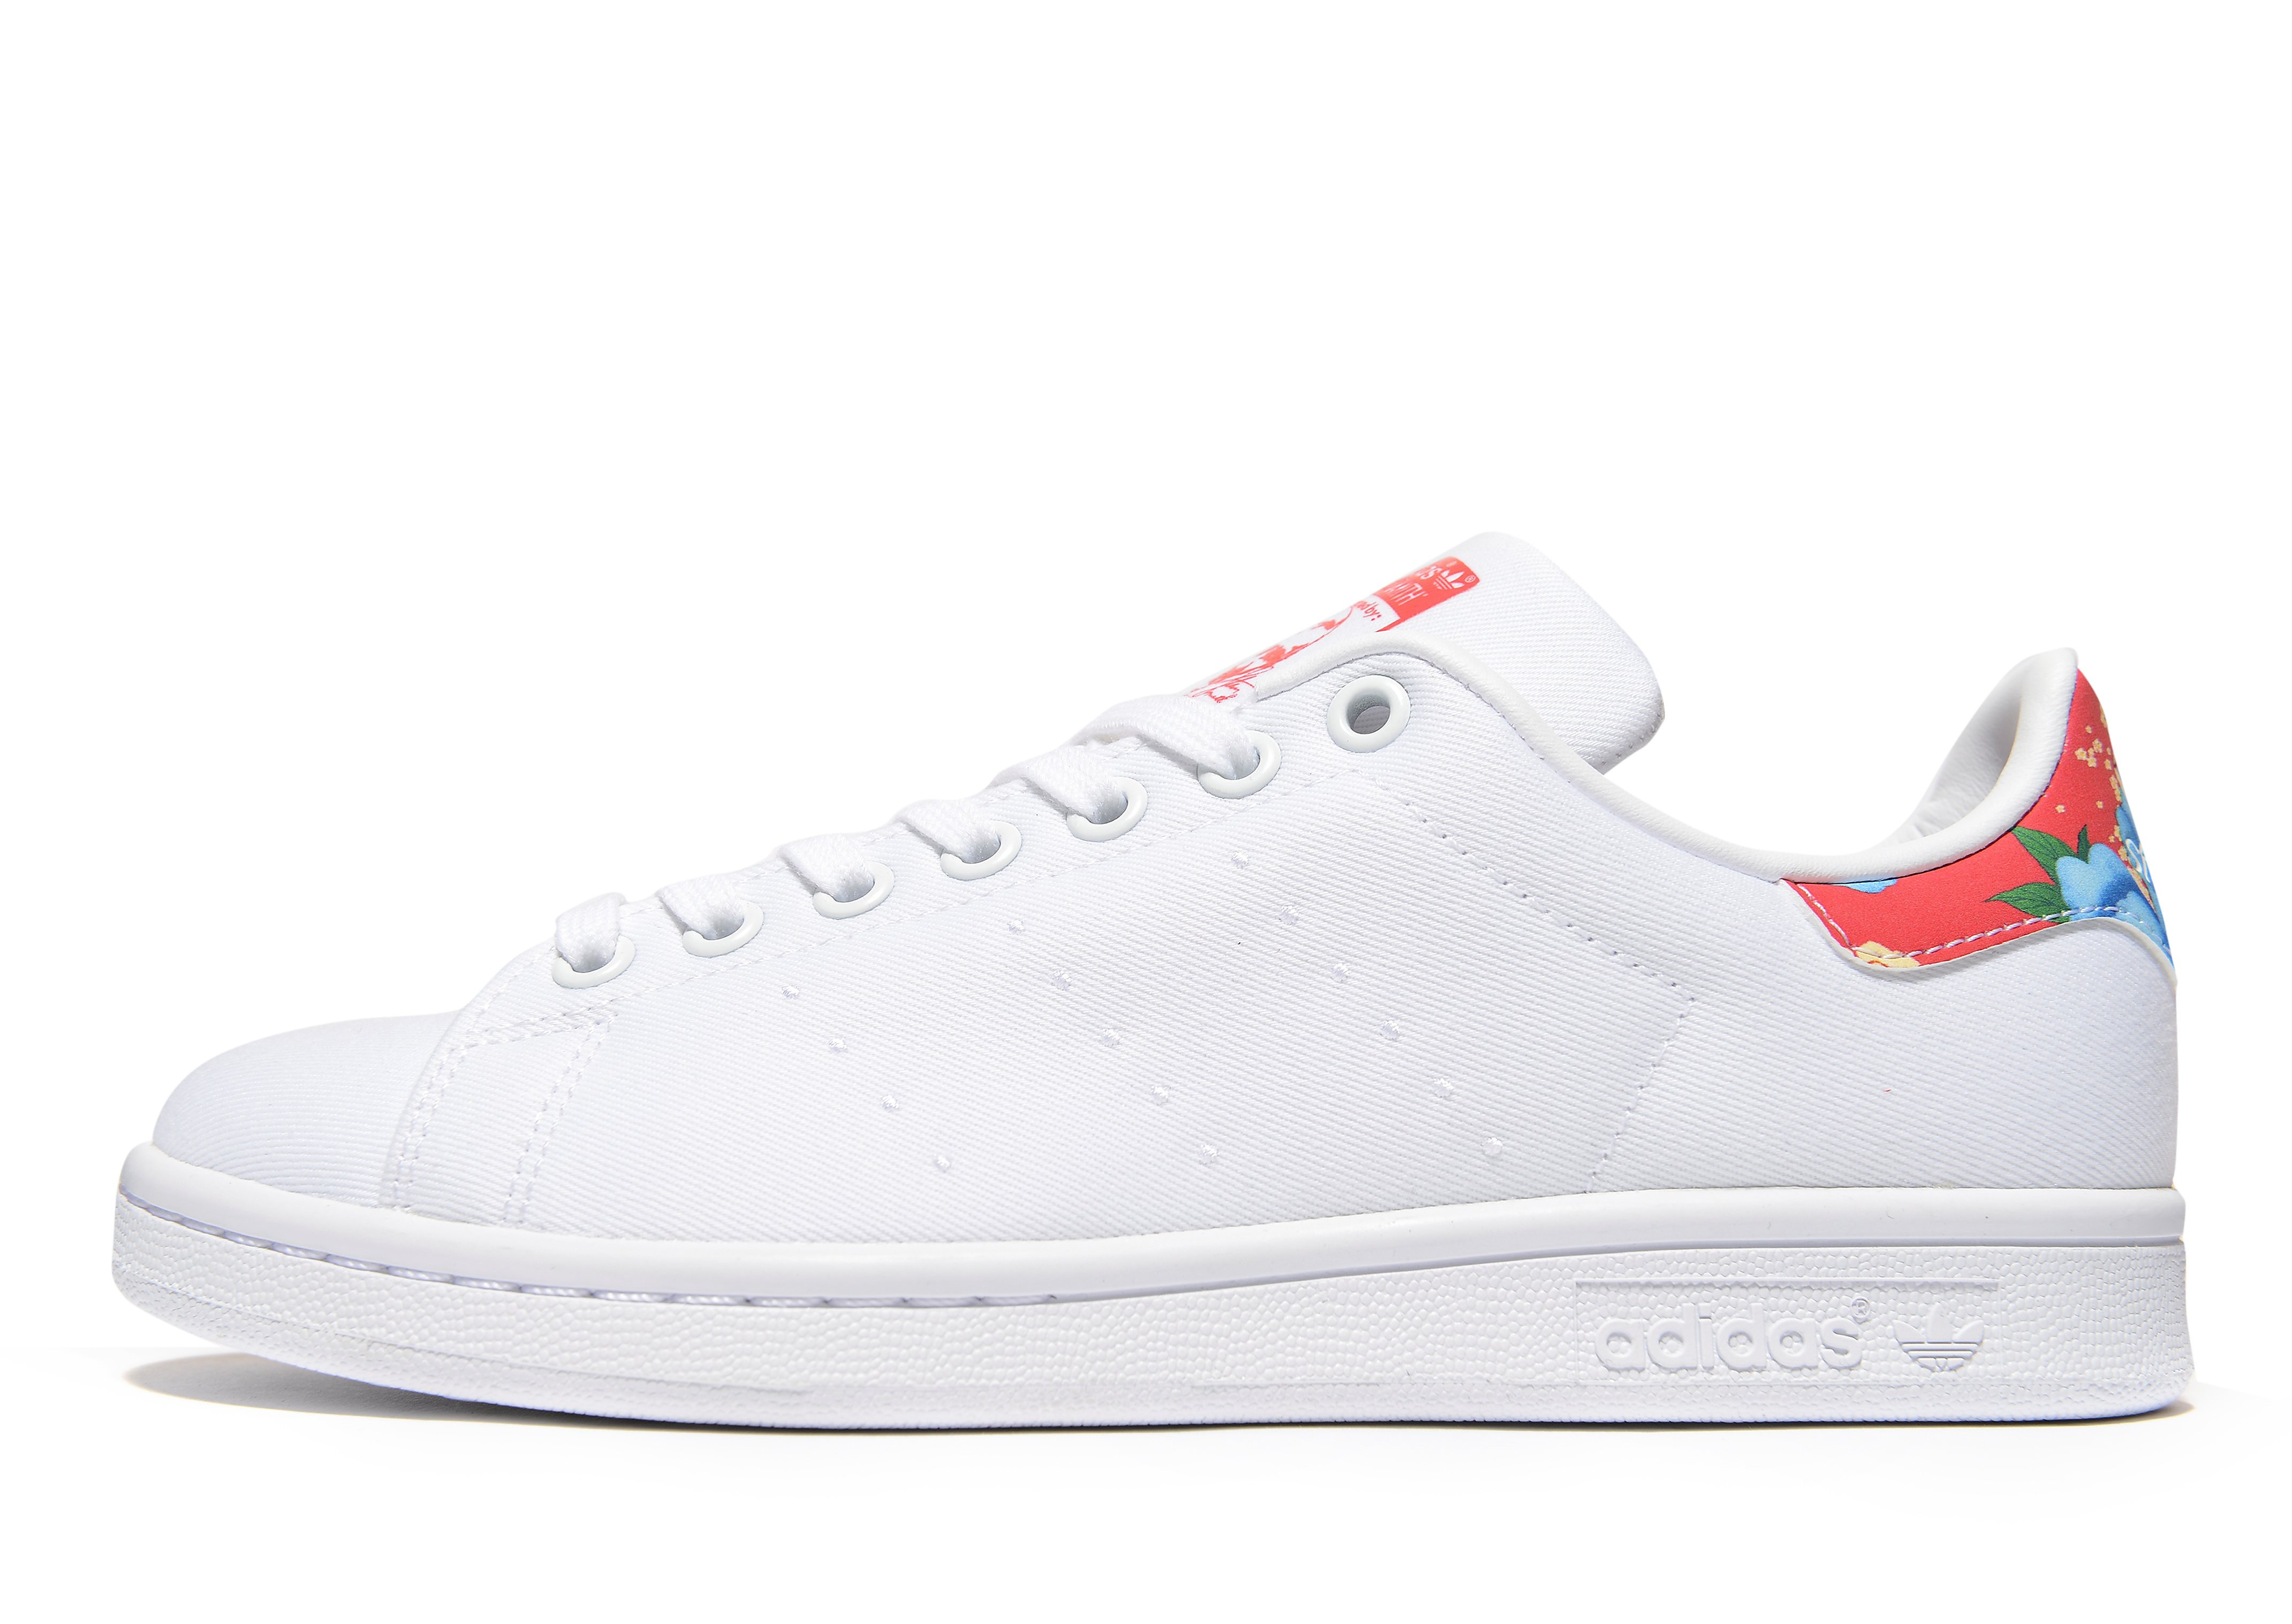 adidas Originals FARM Stan Smith Women's